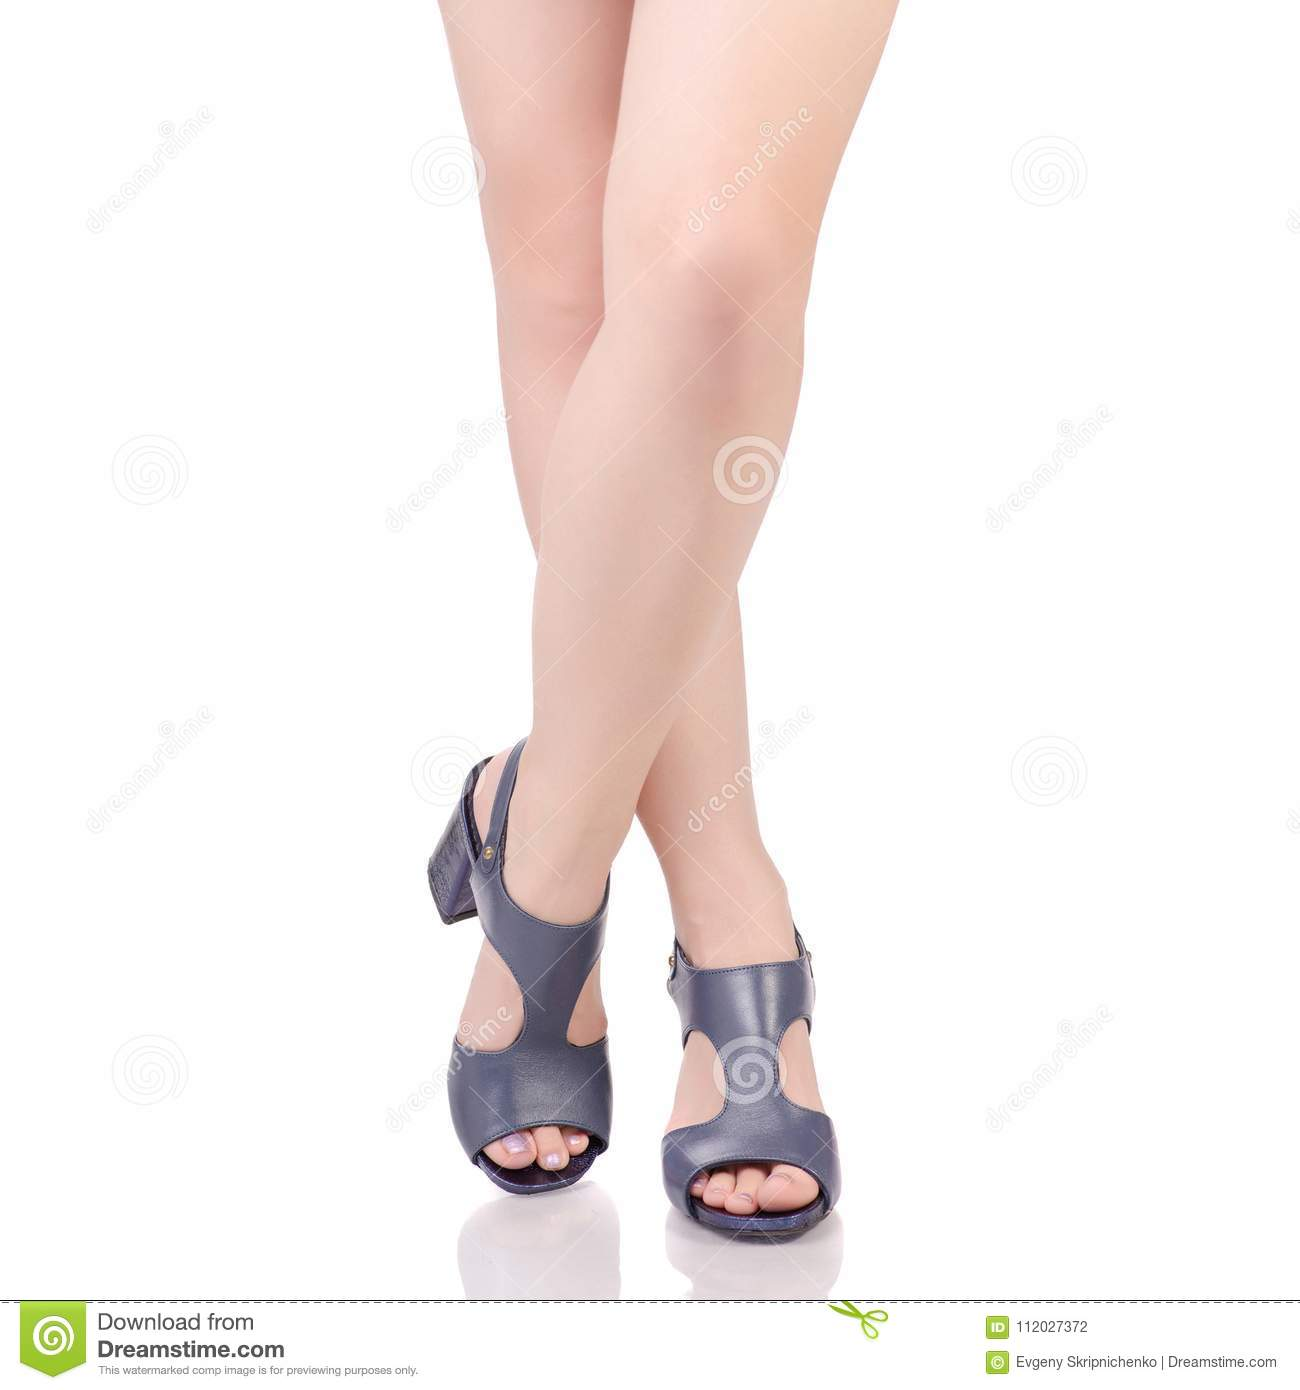 002b031e6 Female legs in blue leather shoes sandals beauty fashion buy shop on white  background isolation